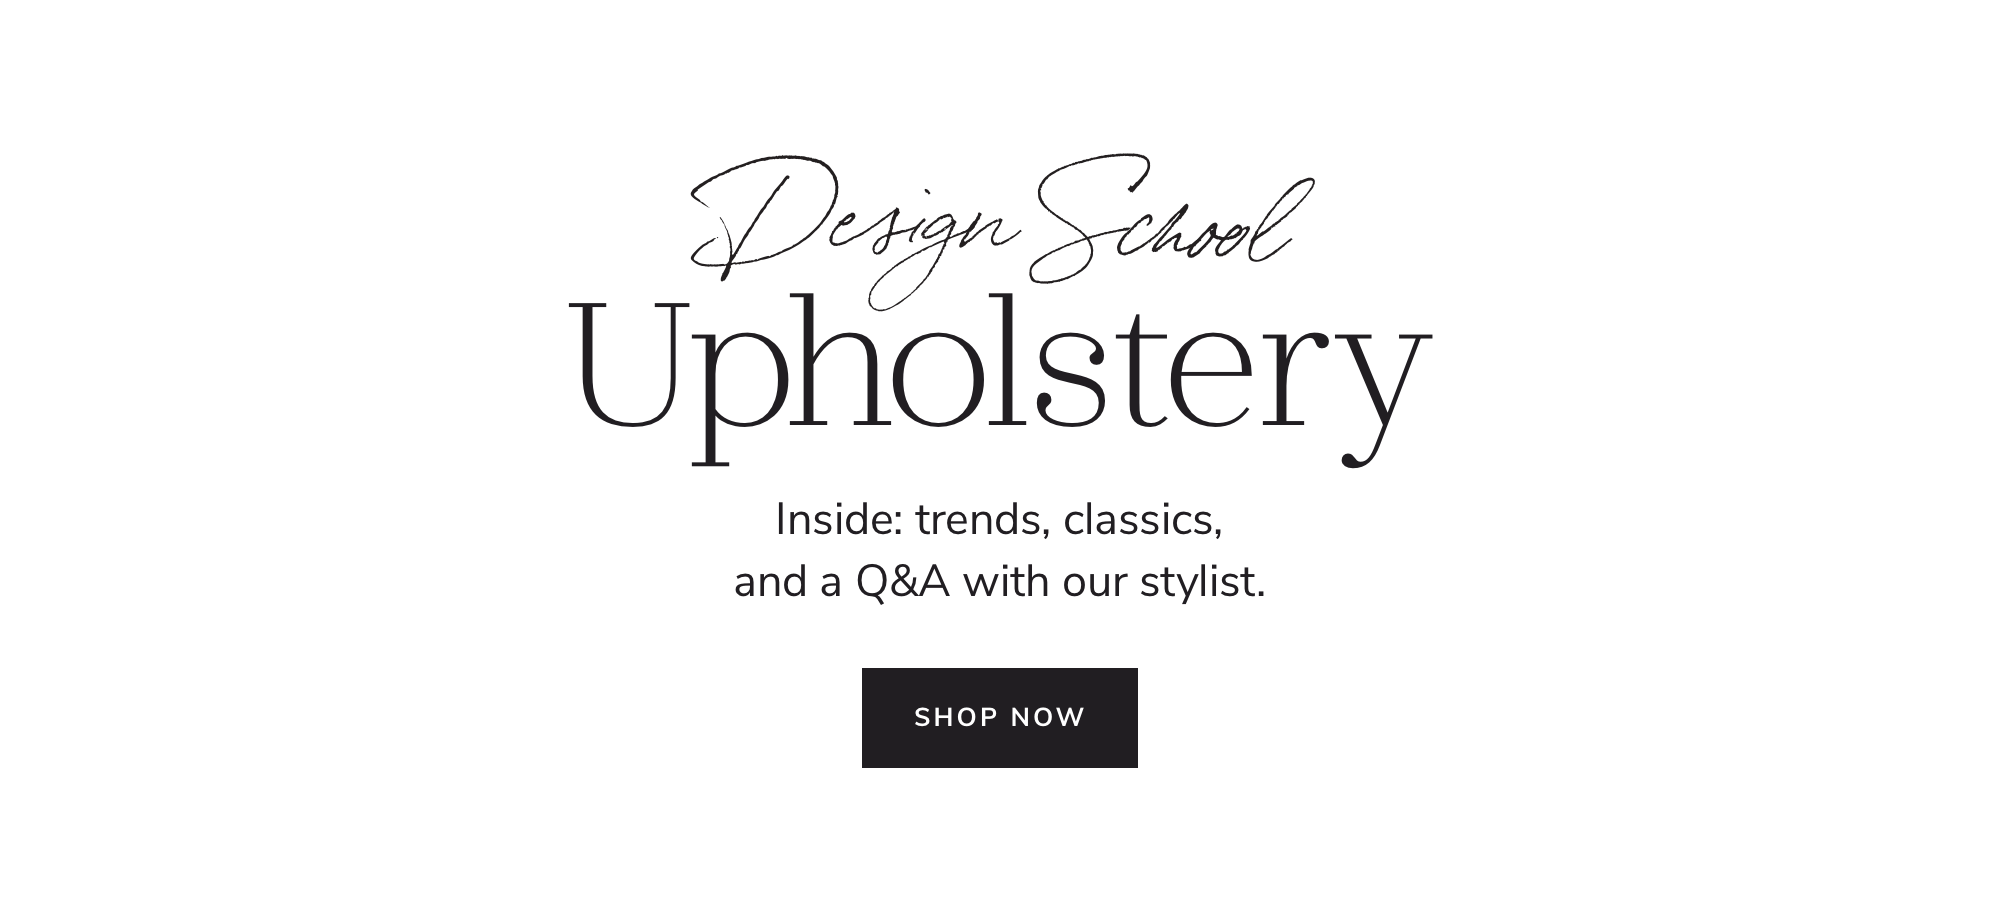 Design School: Upholstery. Inside trends, classics and a Q&A with our stylist.